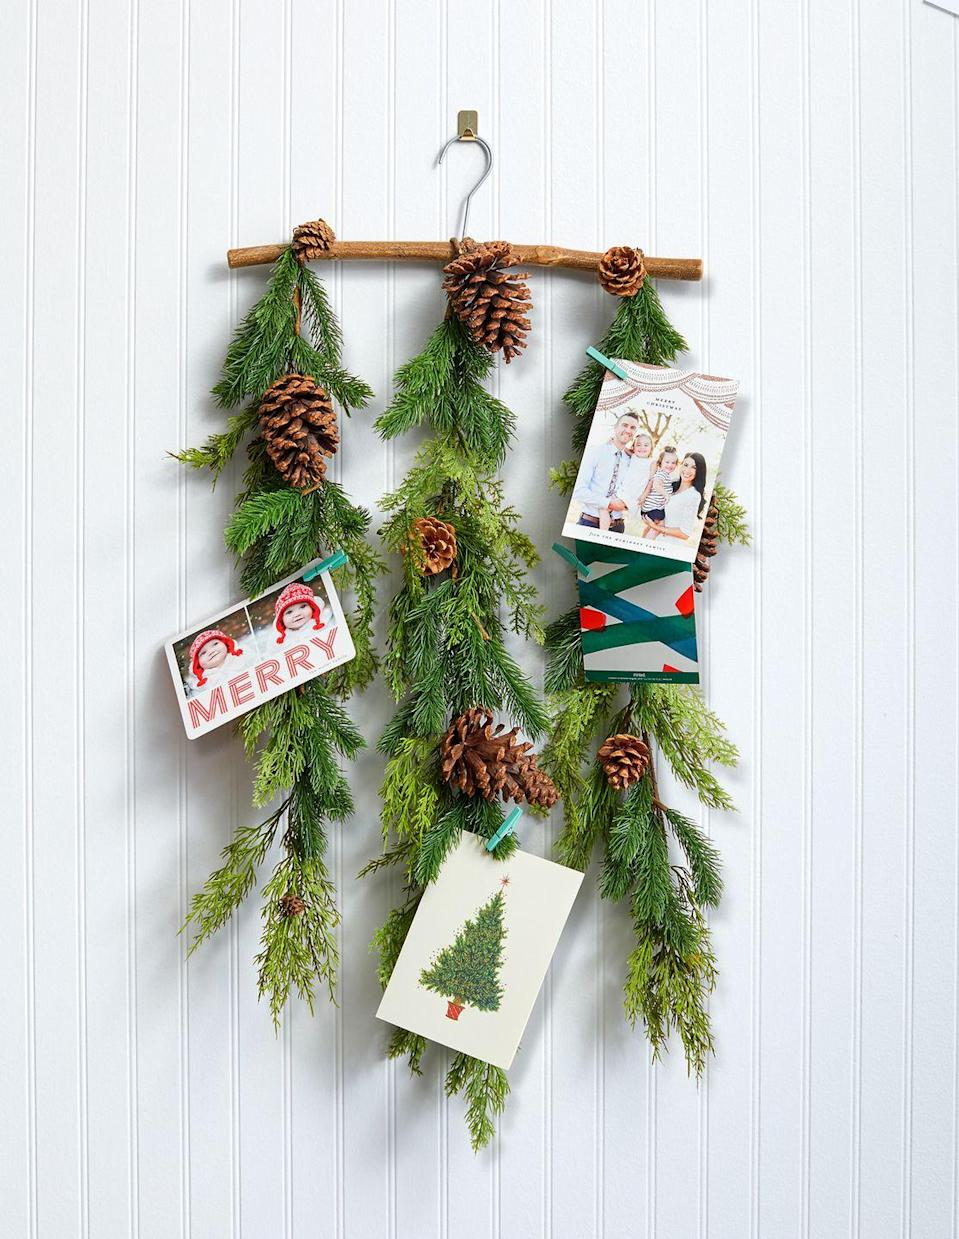 <p>Enhance garland with your favorite holiday cards and decorative acorns for a festive look. </p>